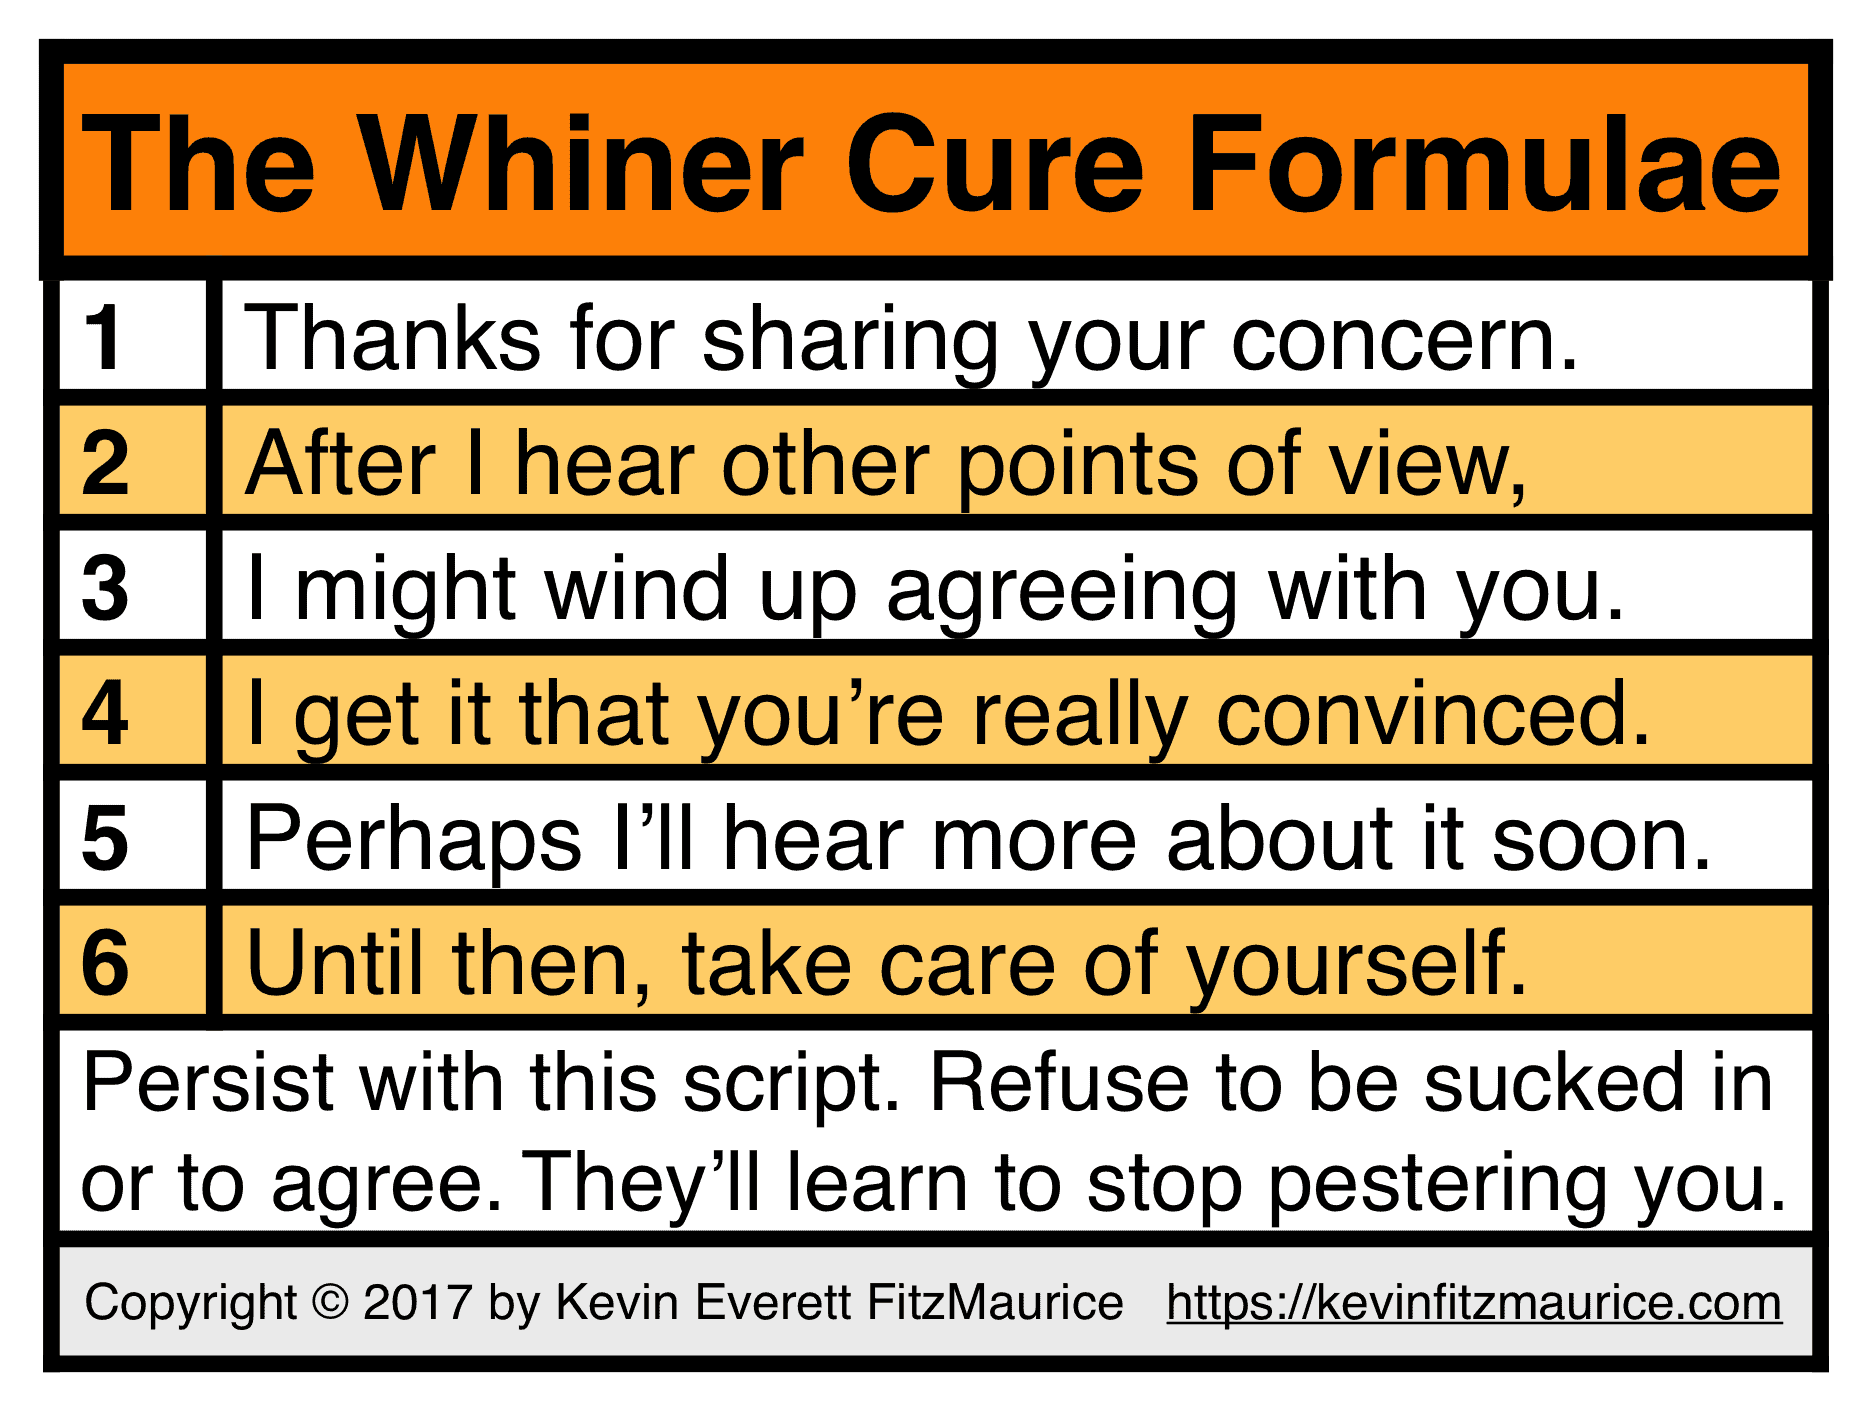 The Whiner Cure Formulae